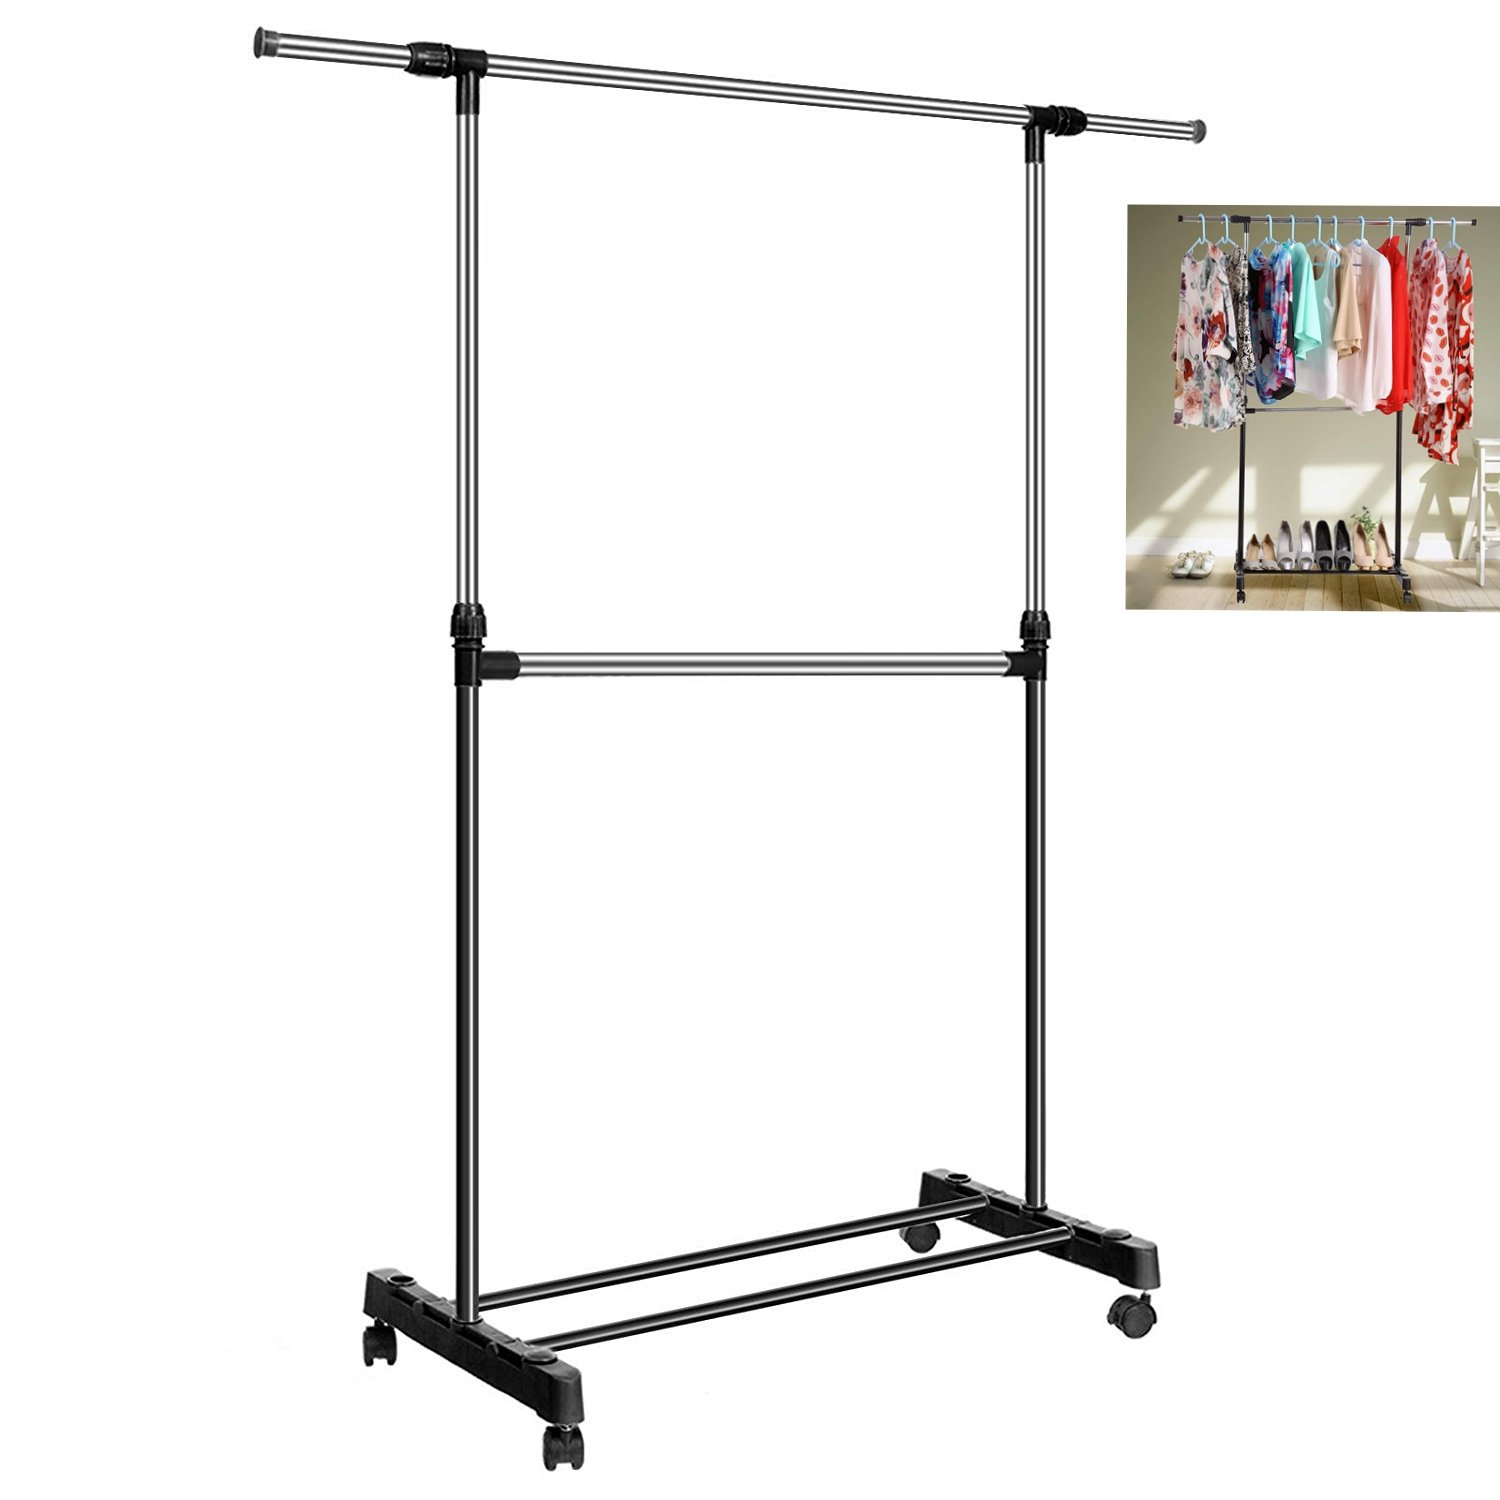 Fashine Stainless Steel Adjustable Telescopic Garment Drying Rack with 4 360 degree wheels [US Stock]